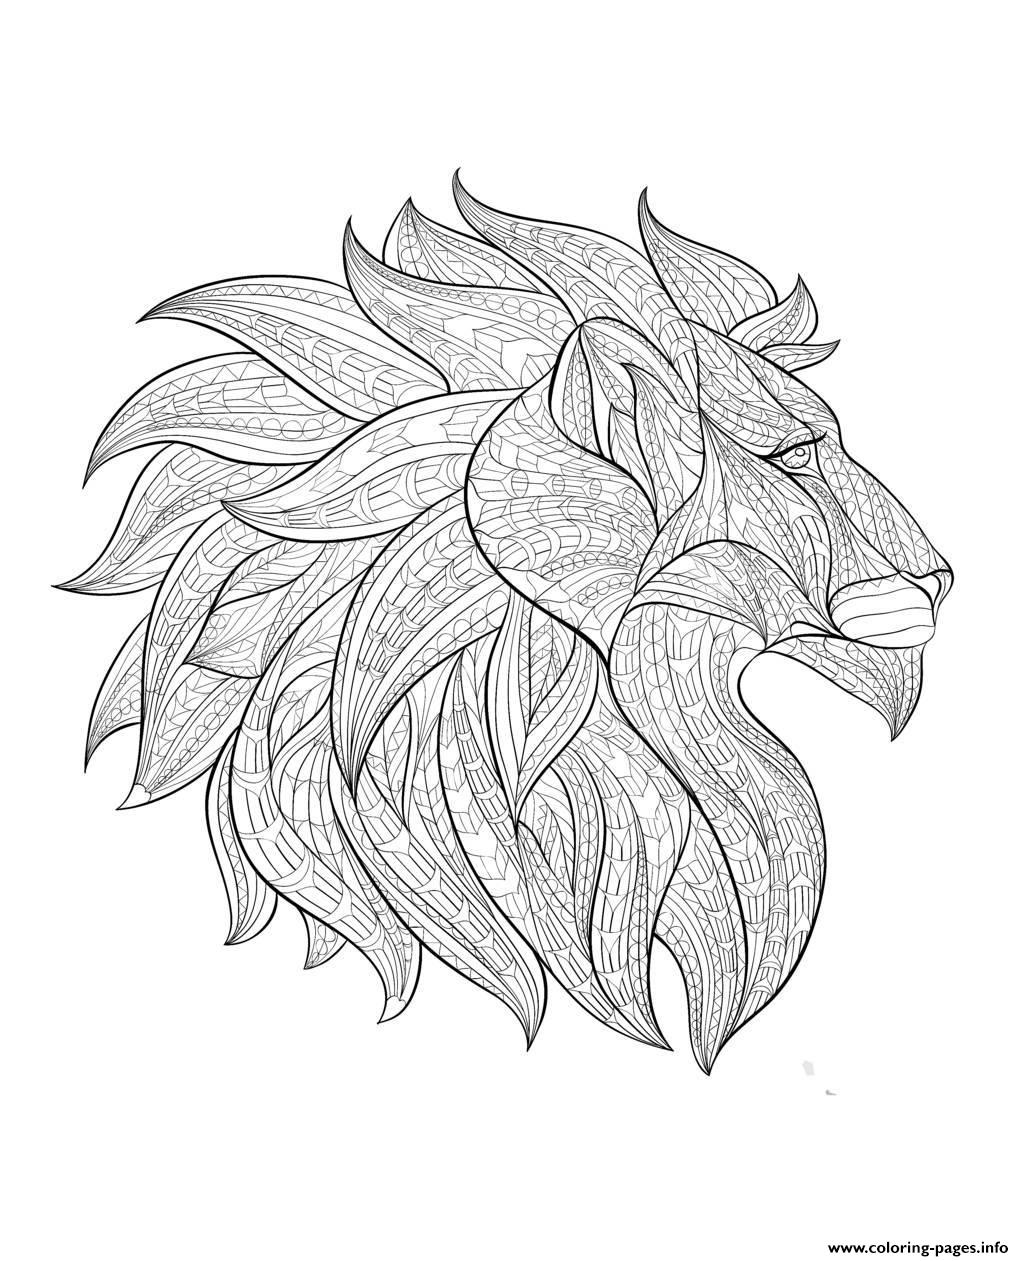 Adult Lion Head Profile Coloring Pages Printable